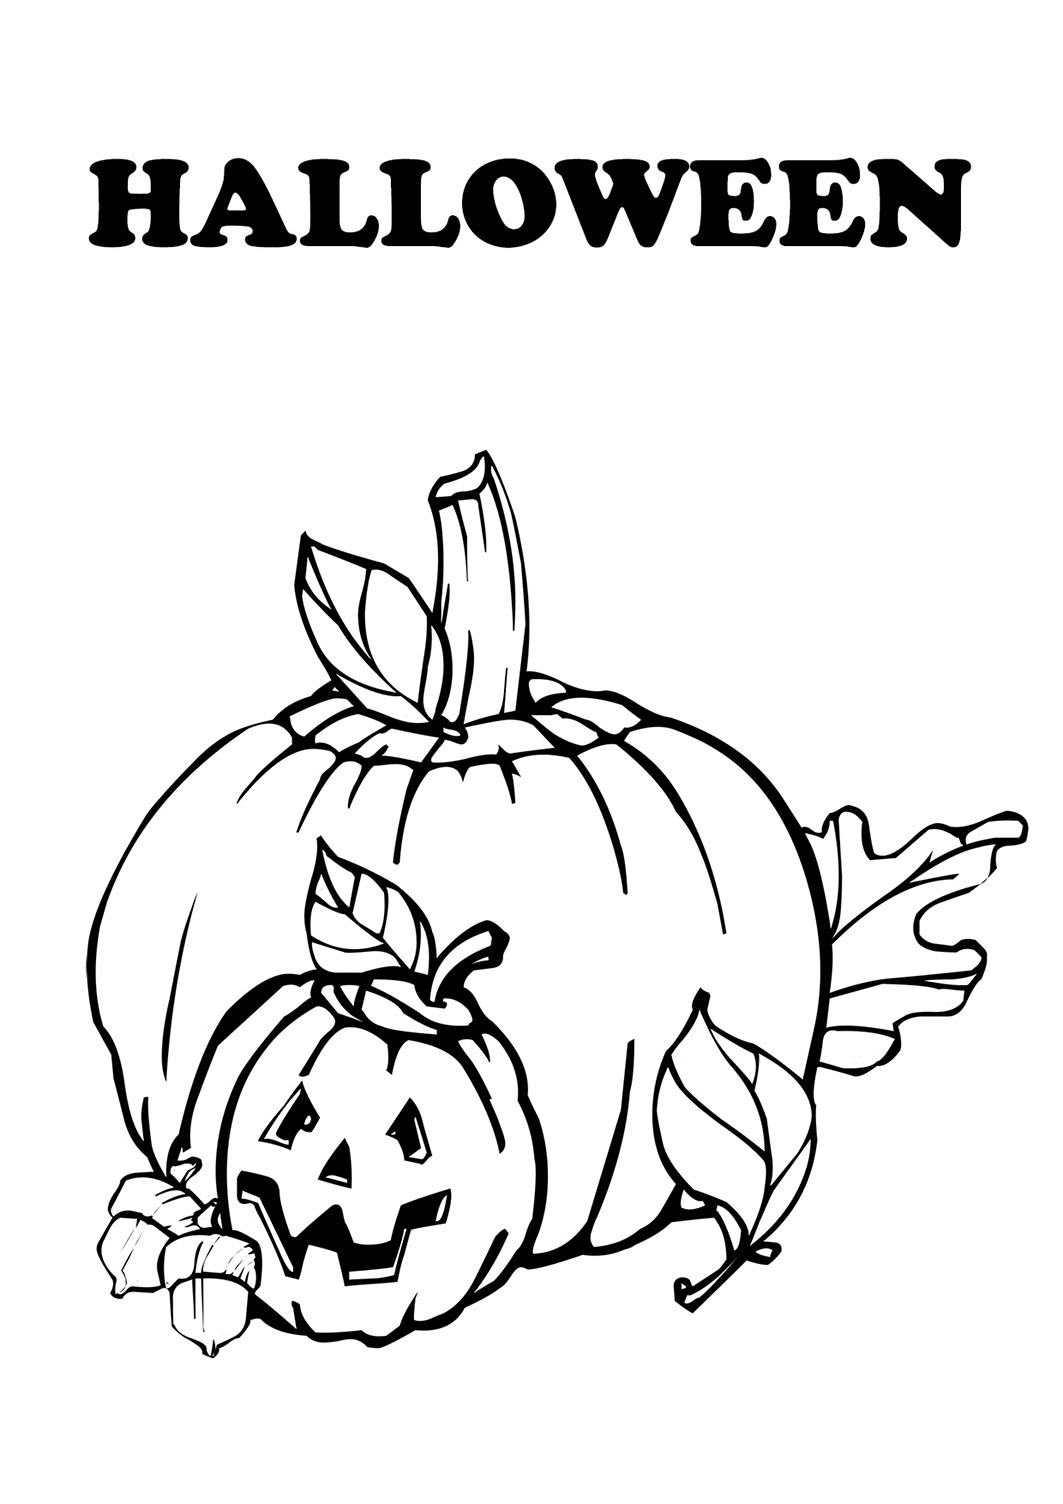 halloween coloring pages pumpkin 50 free printable halloween coloring pages for kids pumpkin pages halloween coloring